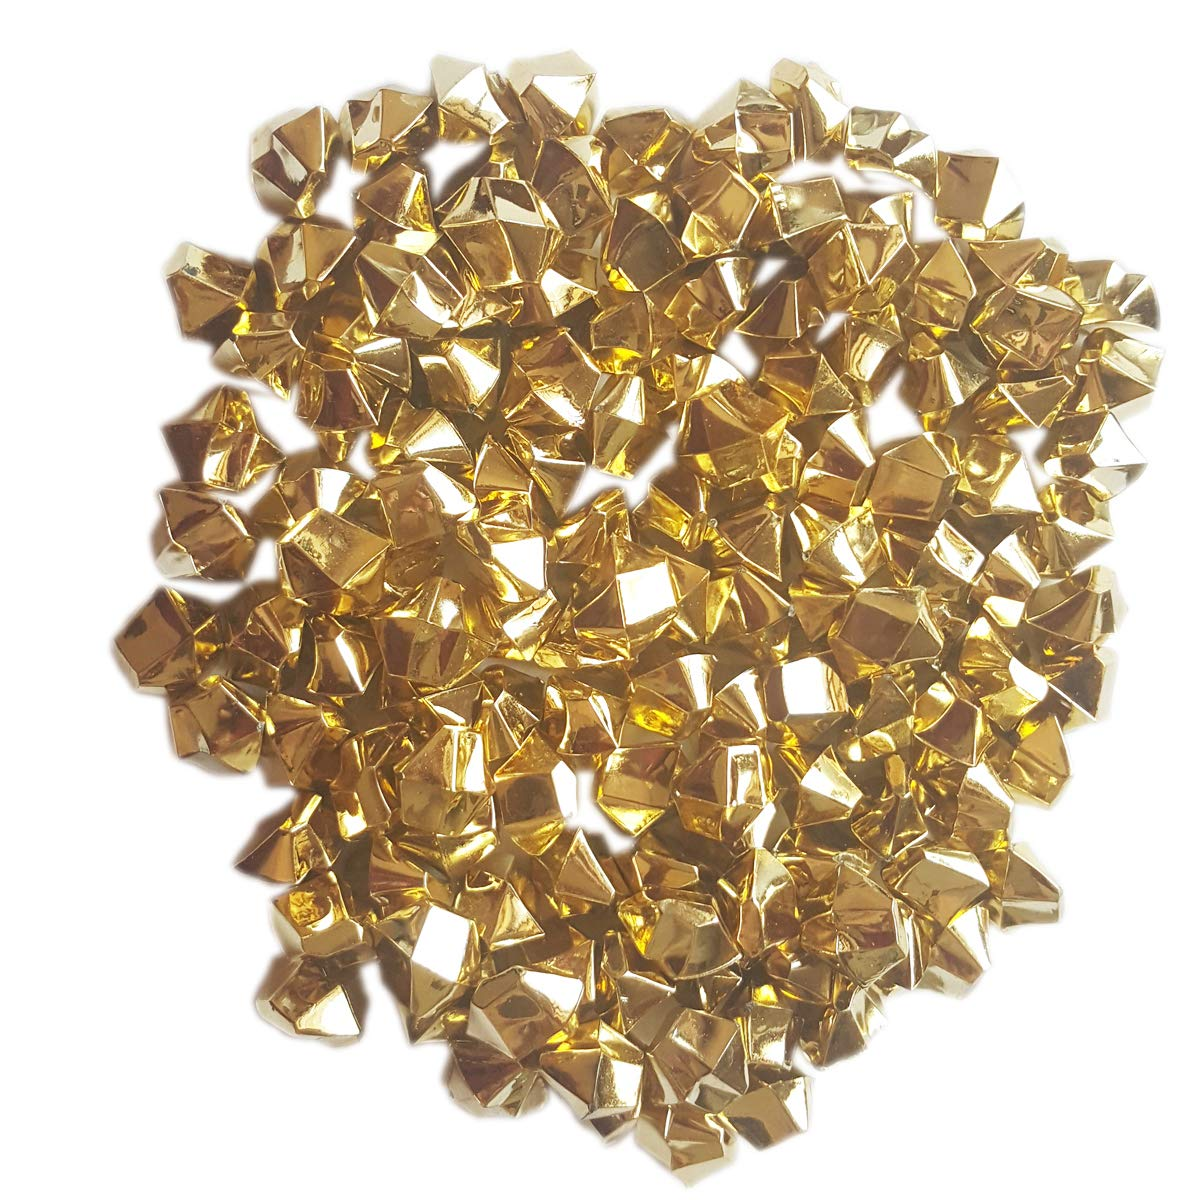 ElE&GANT 1LB(Approx 755Pcs) Plastic Metallic Gold Nuggets for Table Scatter Decoration or Vase Filler (Metallic Golden)